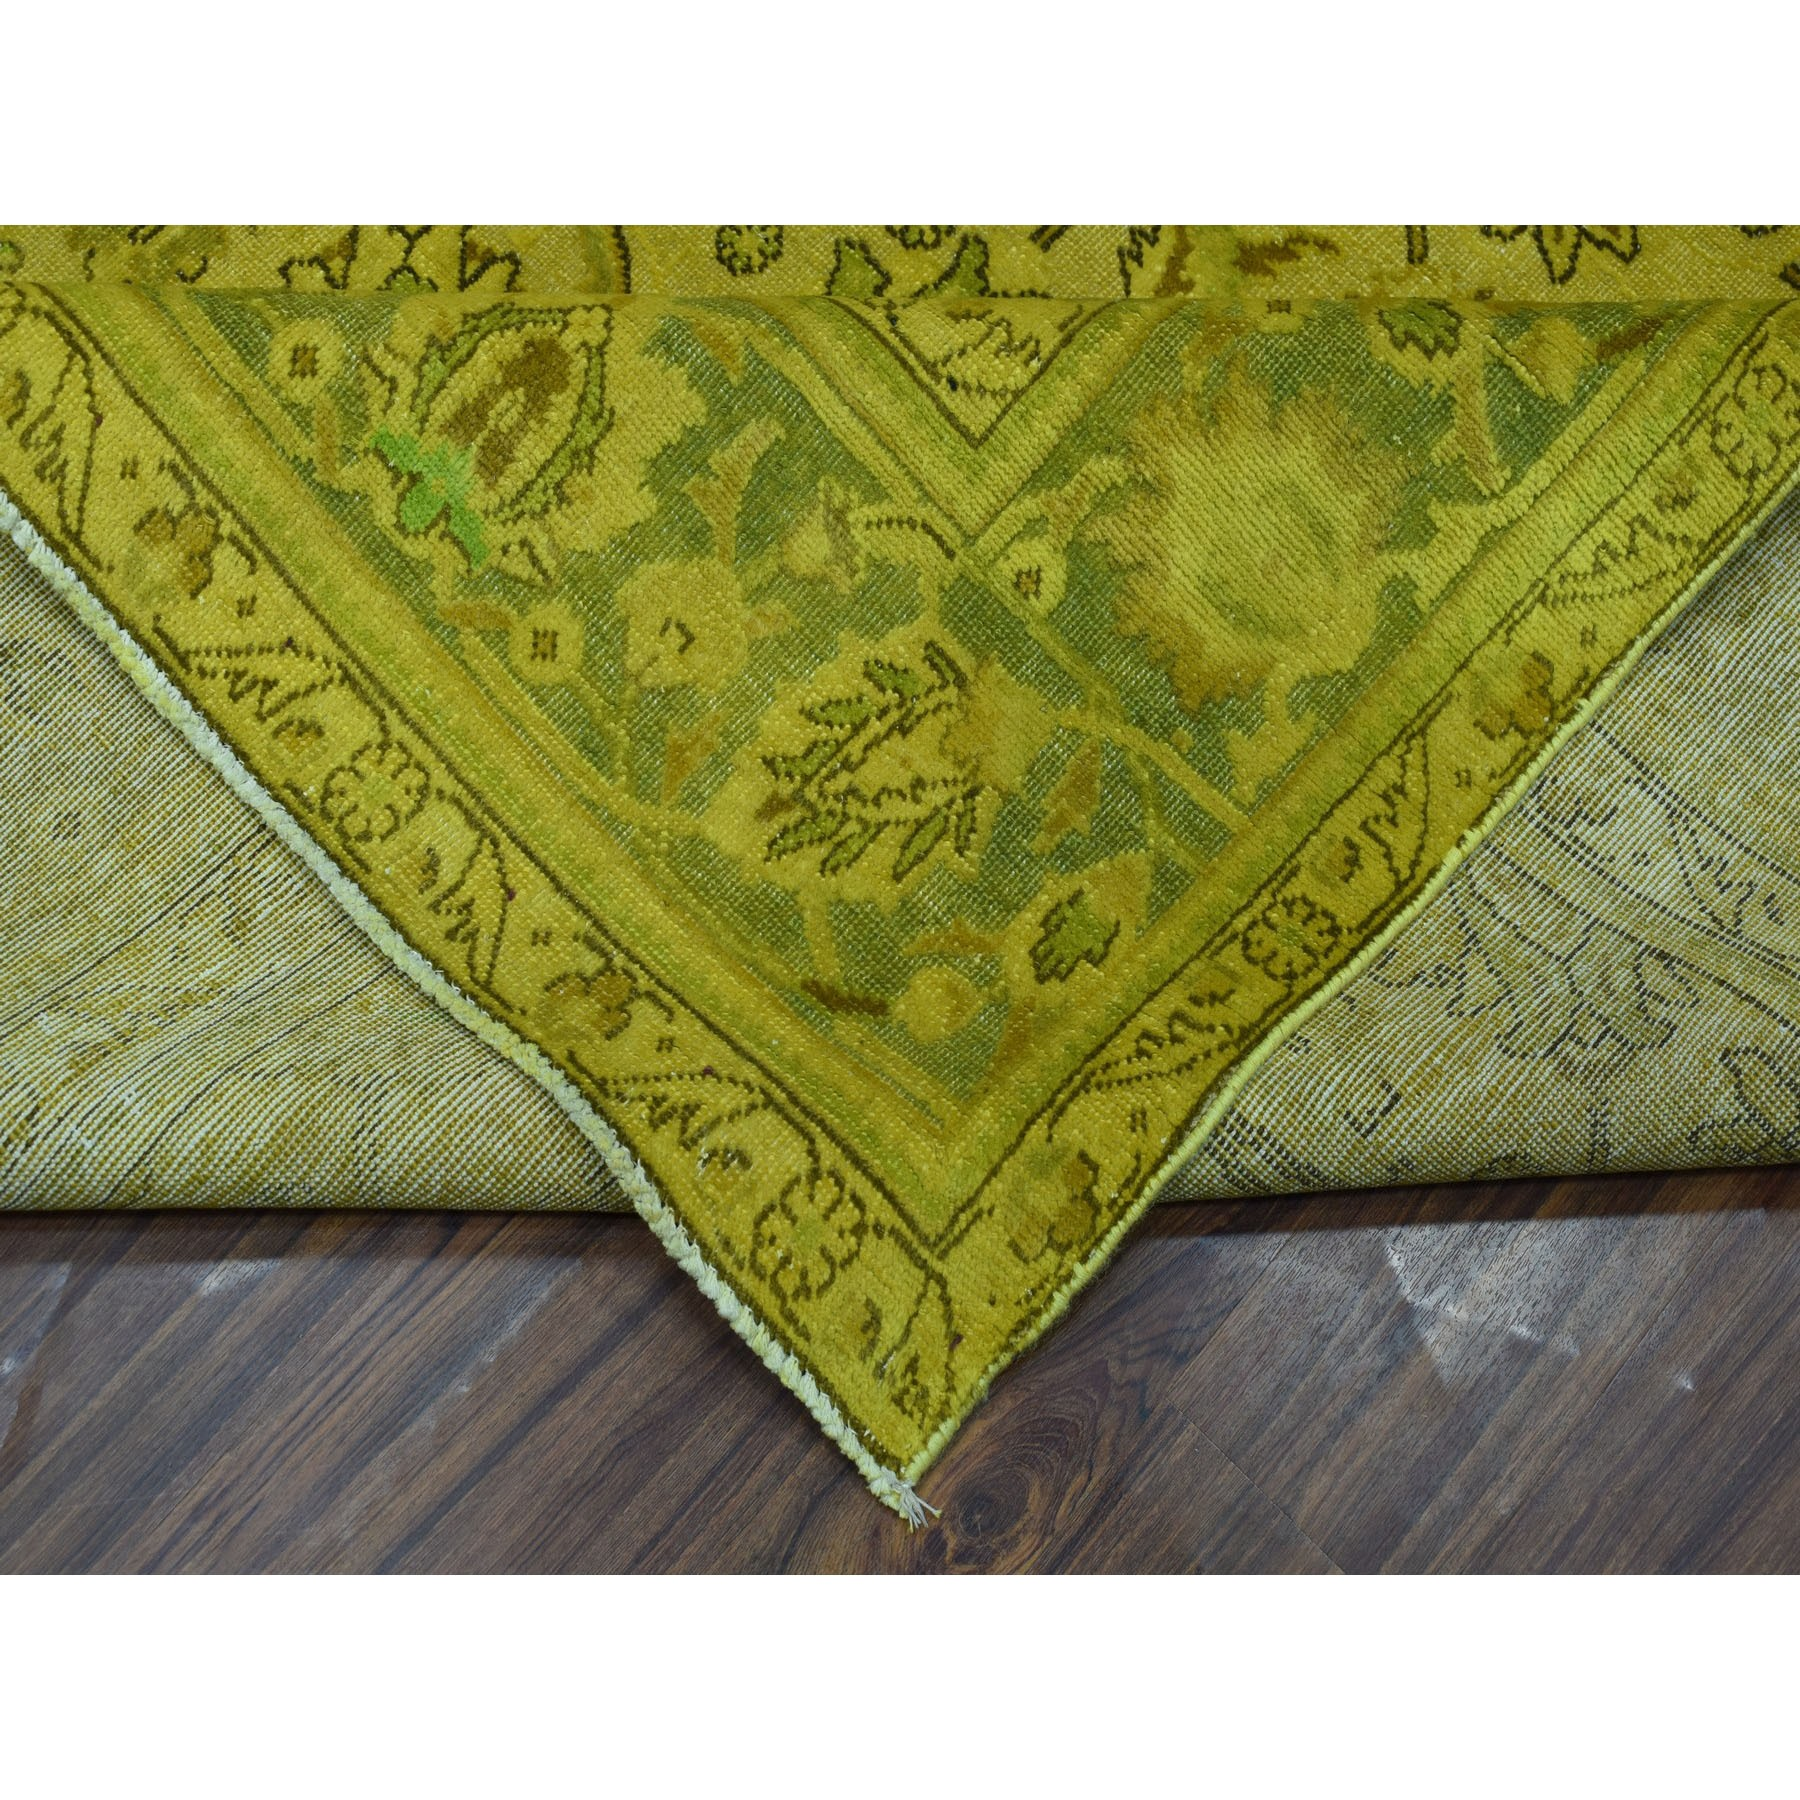 9-7 x12-2  Yellow Vintage Persian Worn Pile Hand Knotted Oriental Rug